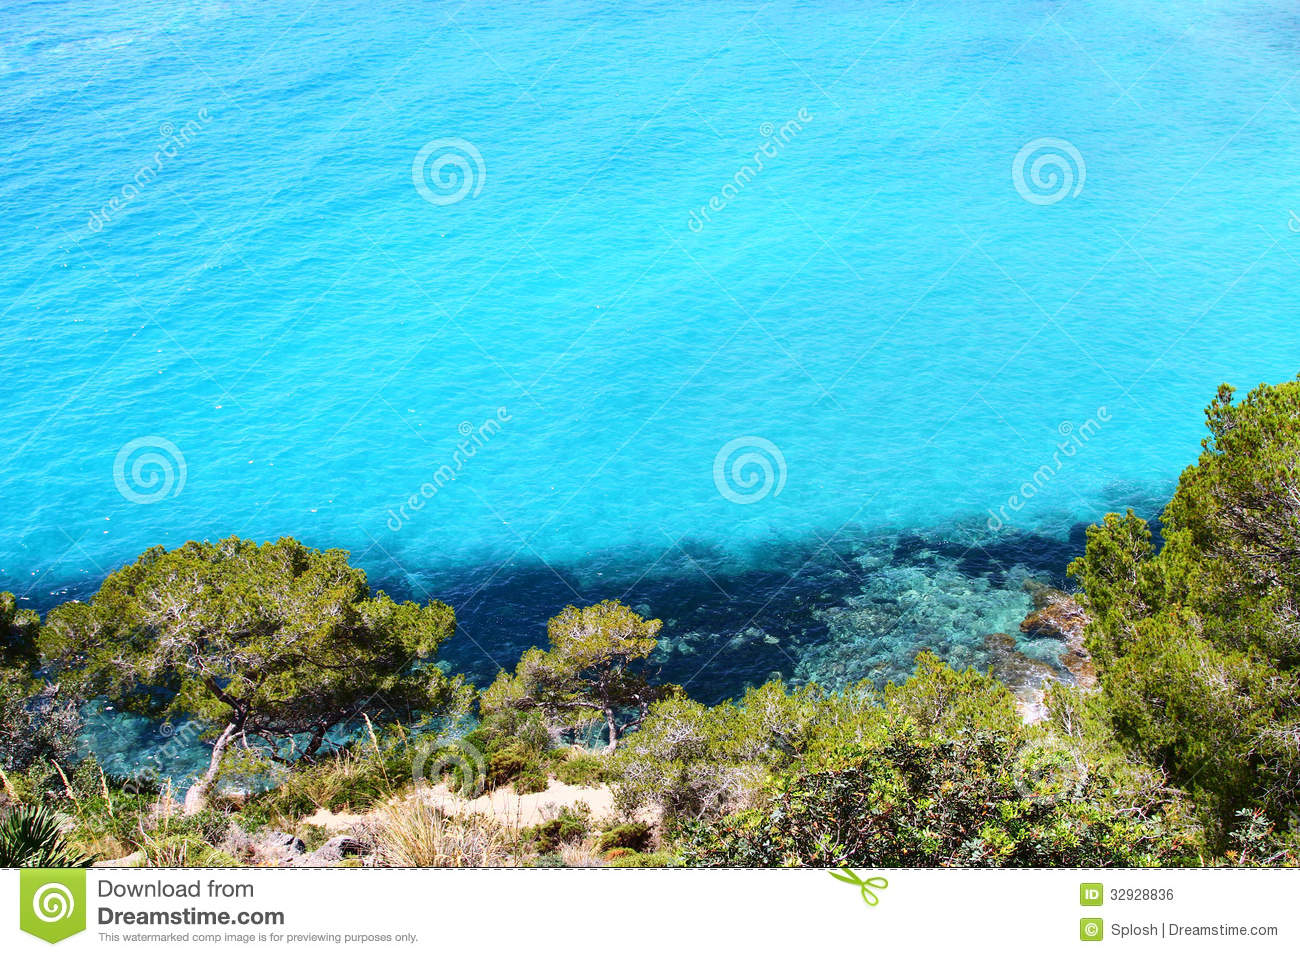 Island Cliffs And Turquoise Sea Water Royalty Free Stock Image   Image